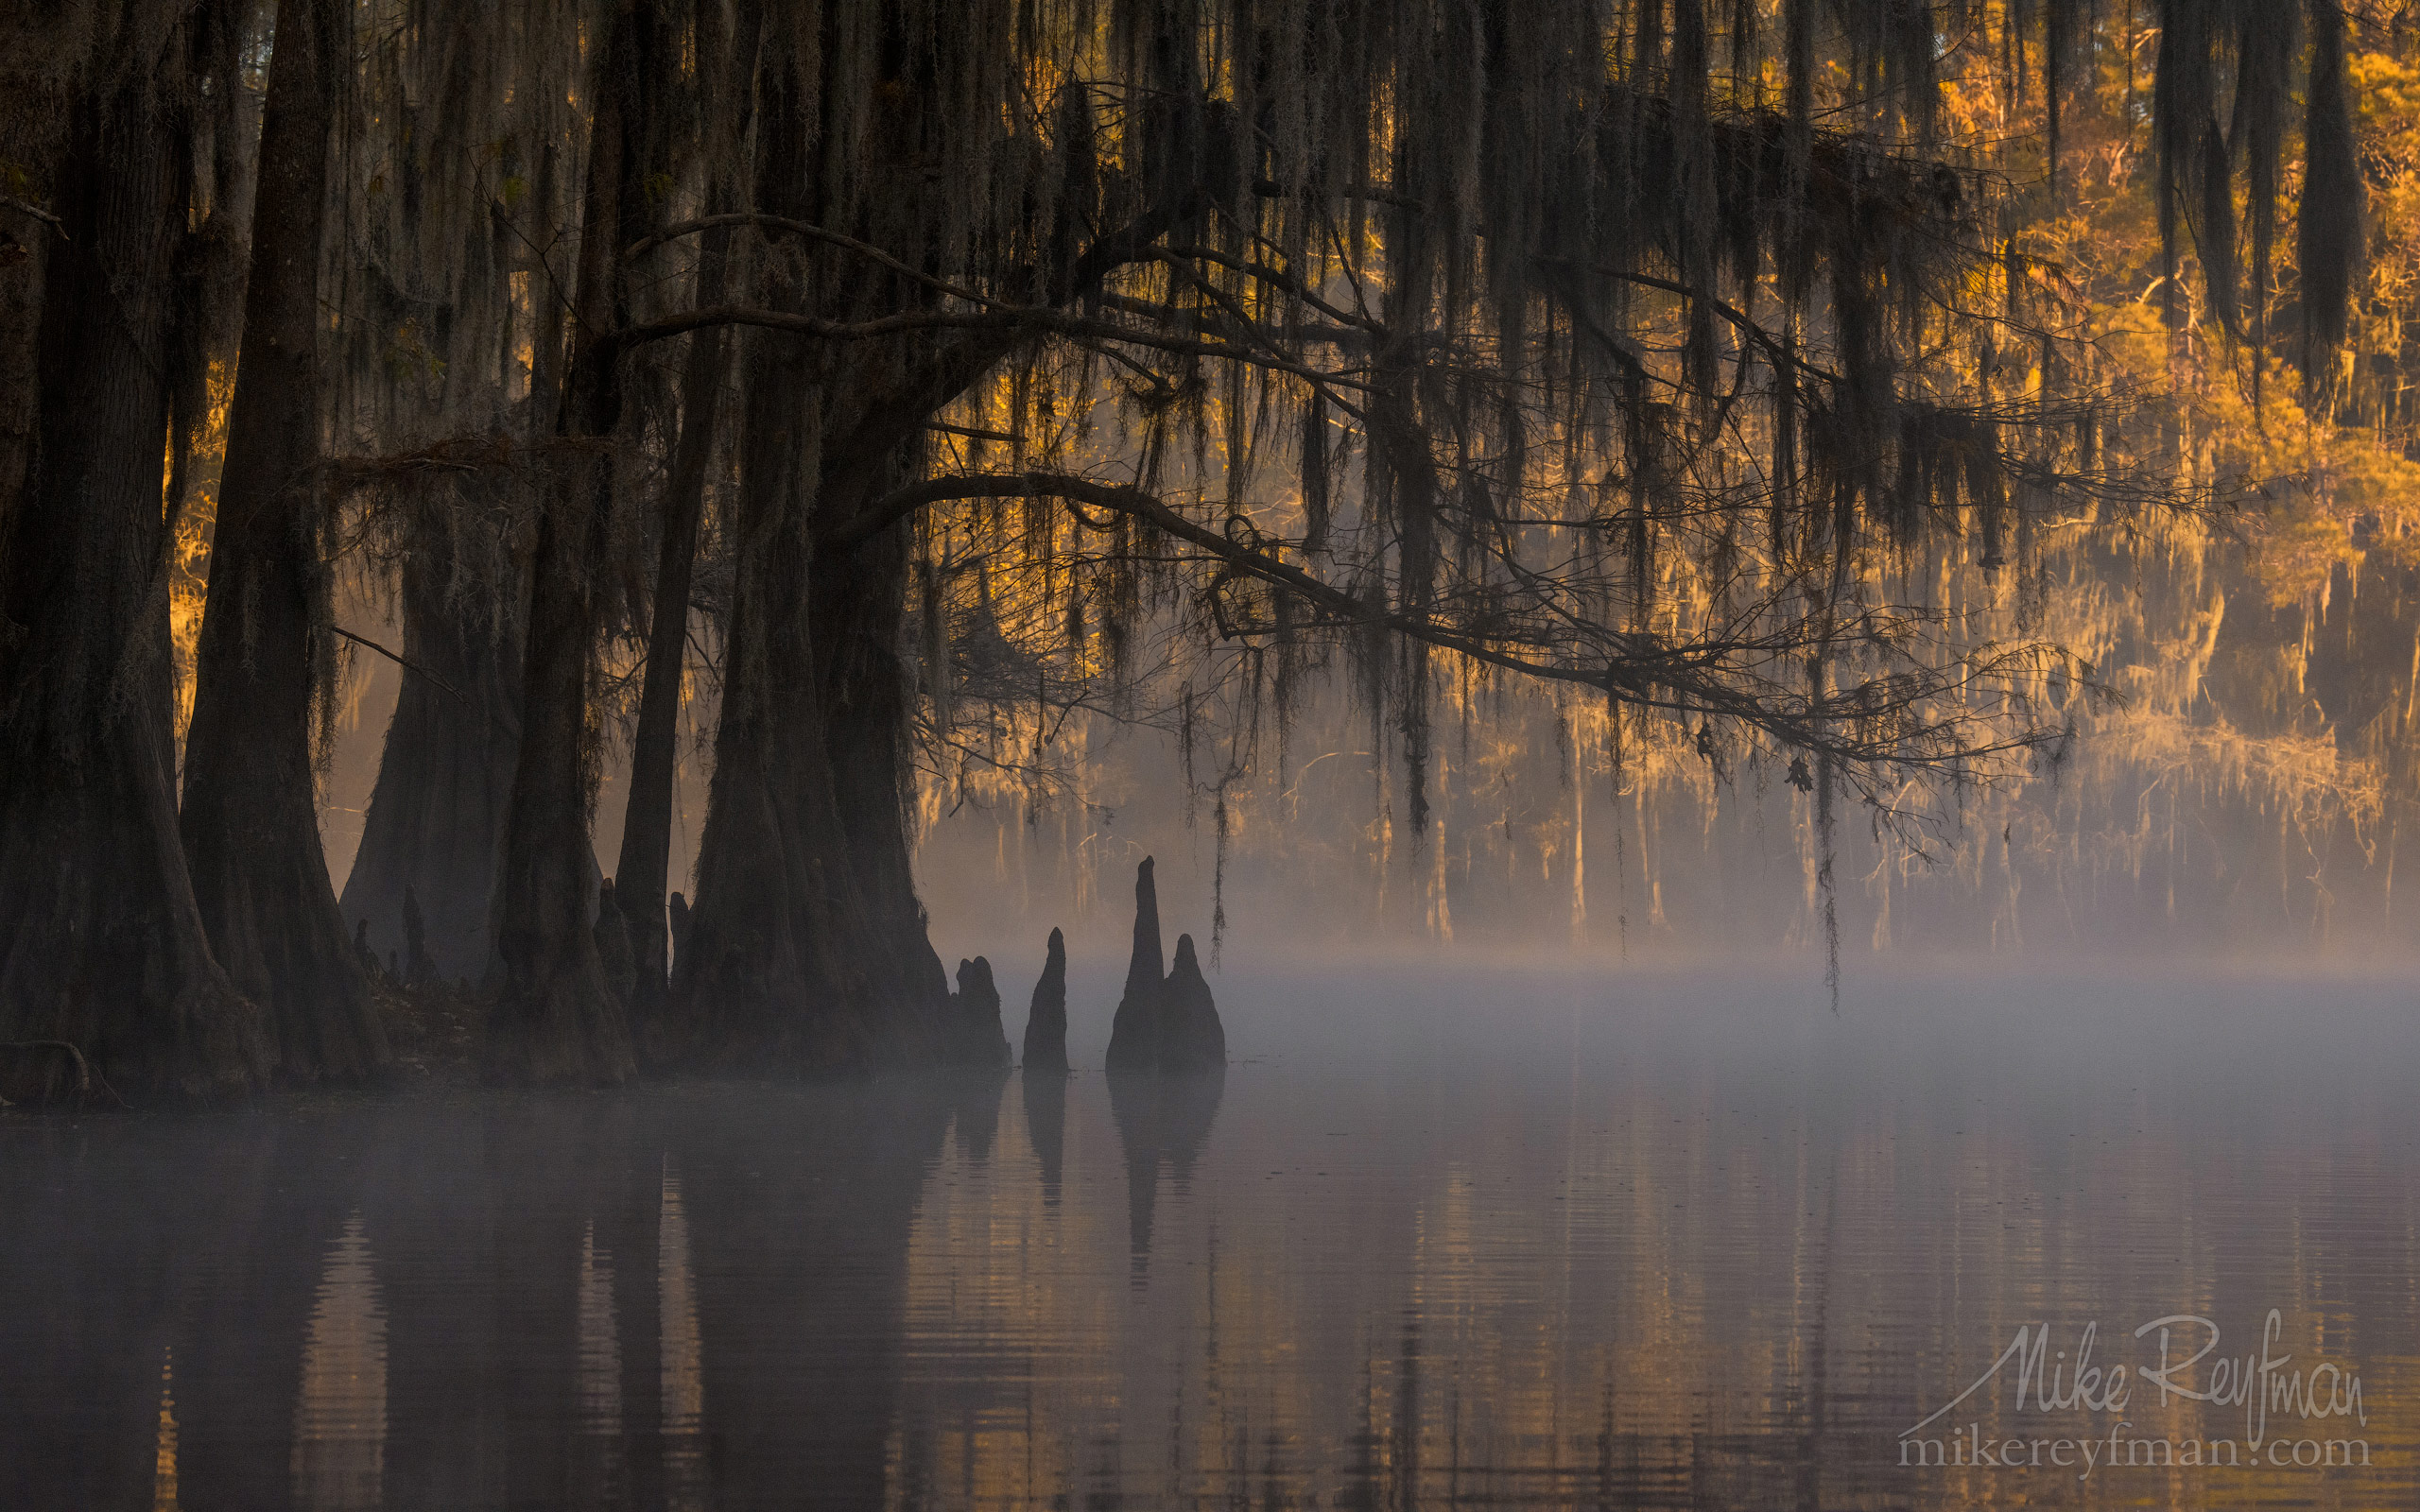 Bald Cypress trees in the swamp. Foggy morning on Caddo Lake, Texas, US 029-LT1-50A3431.jpg - Bold Cypress and Tupelo Trees in the swamps of Atchafalaya River Basin. Caddo, Martin and Fousse Lakes. Texas/Louisiana, USA. - Mike Reyfman Photography